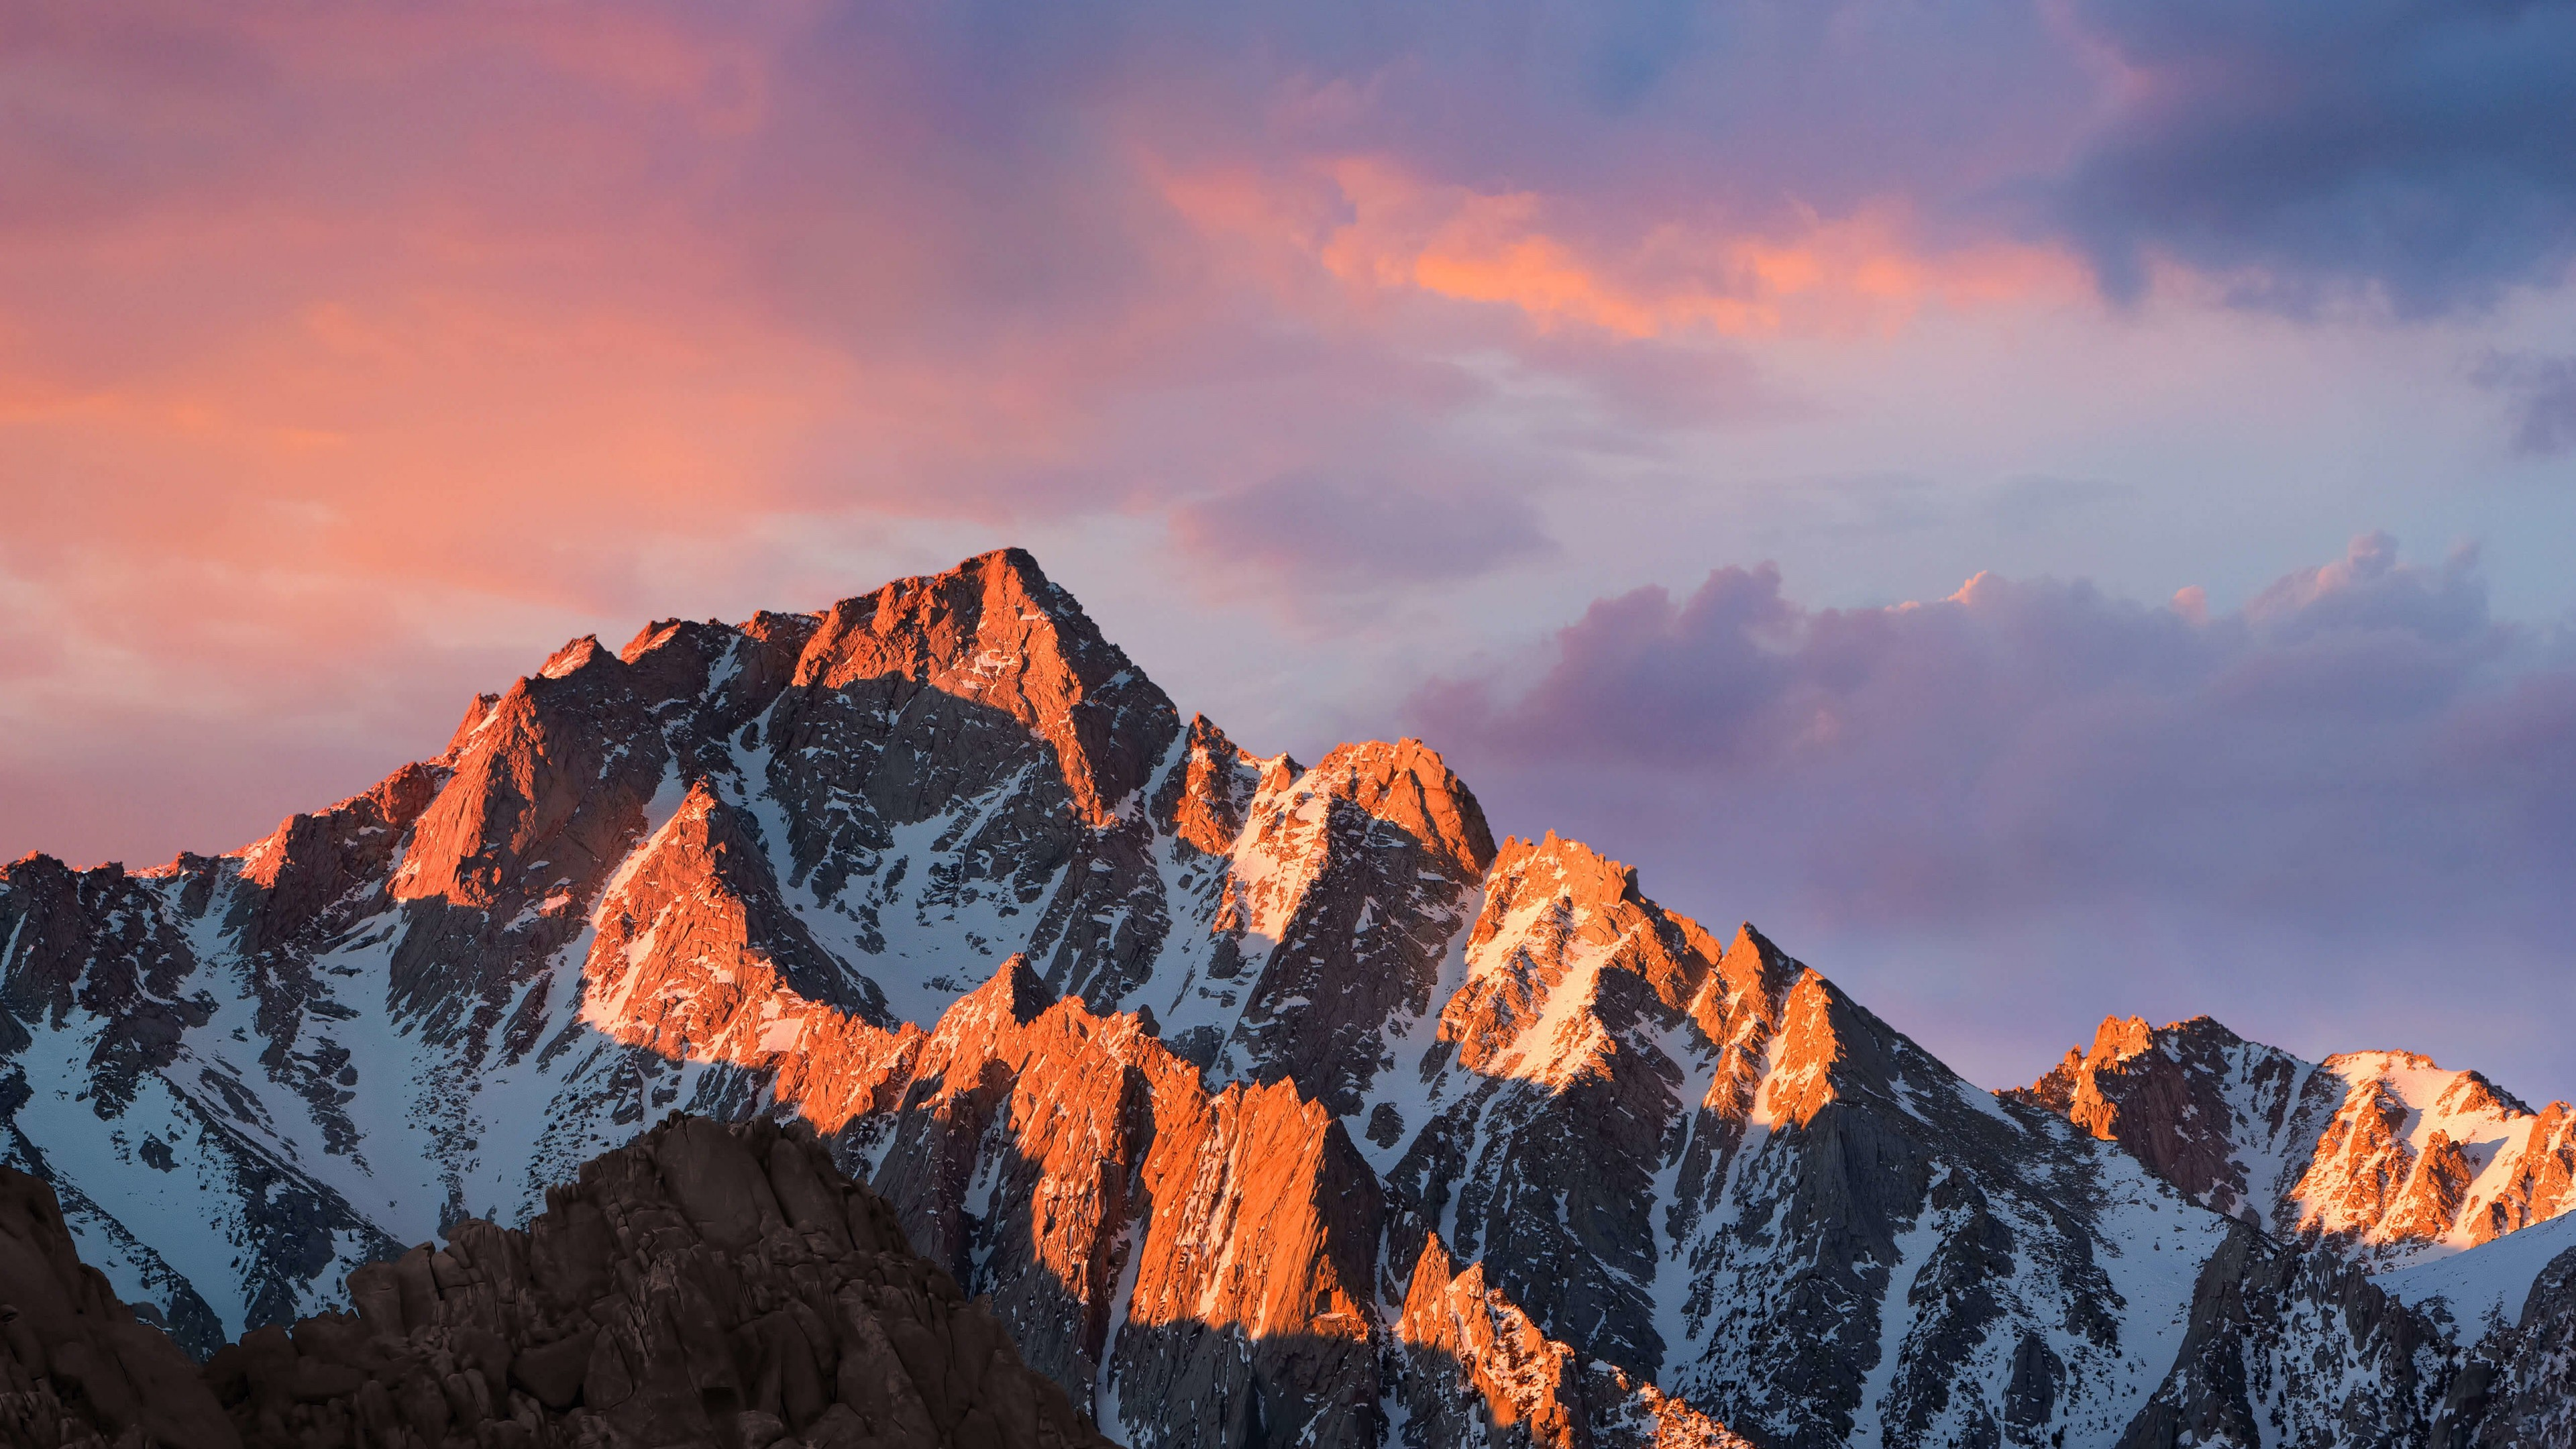 macOS Sierra Wallpaper for Desktop 4K 3840x2160